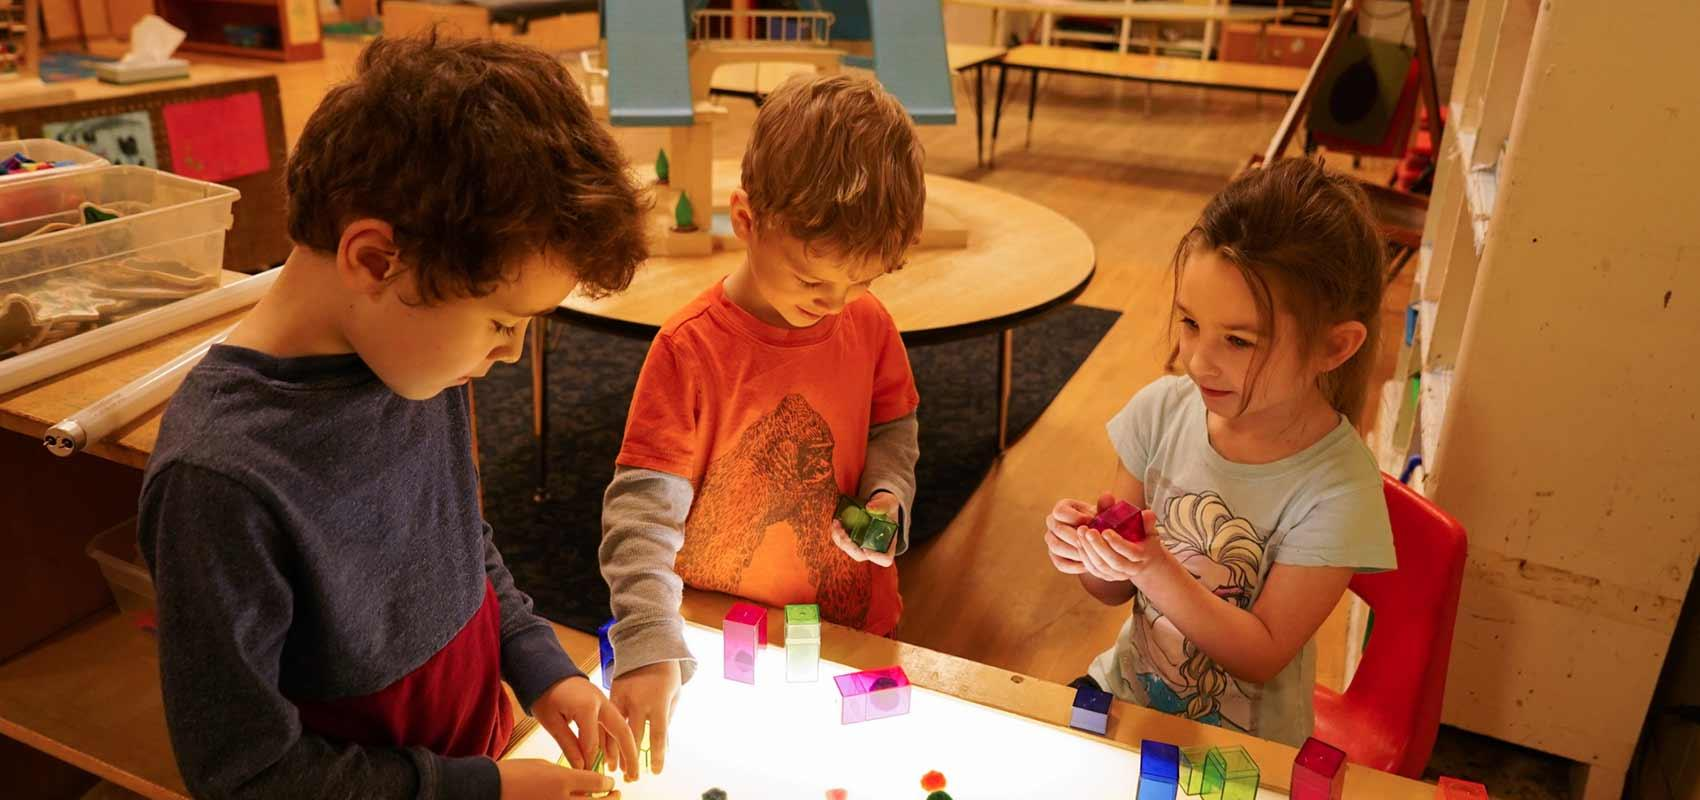 Children play with building blocks in classroom